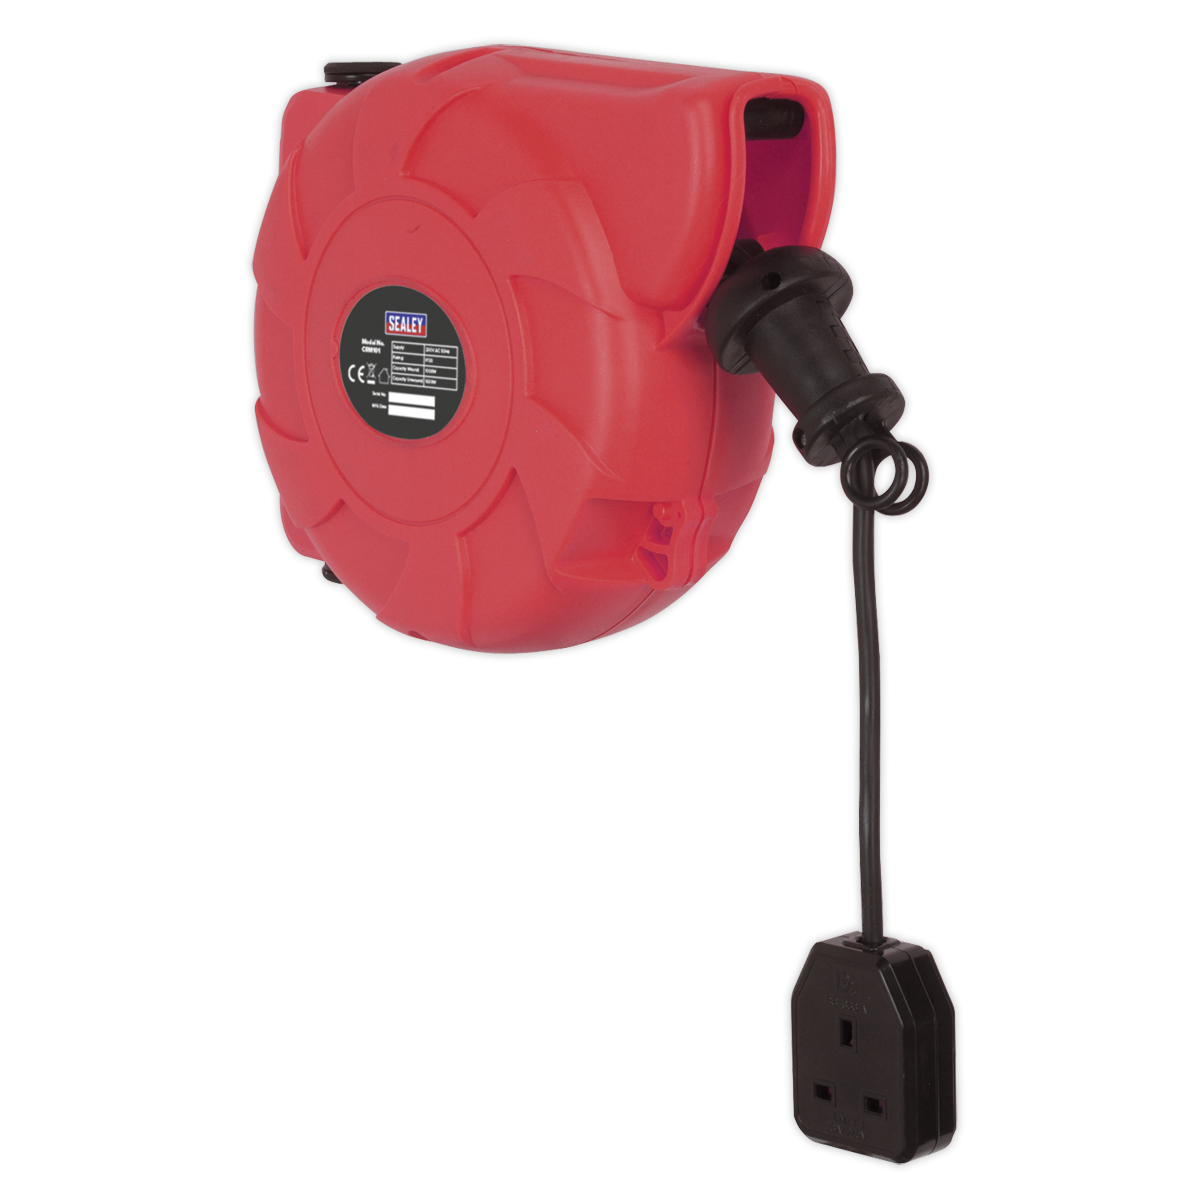 Cable Reel System Retractable 10m 1 x 230V Socket   SEALEY CRM101 by Sealey   Ne